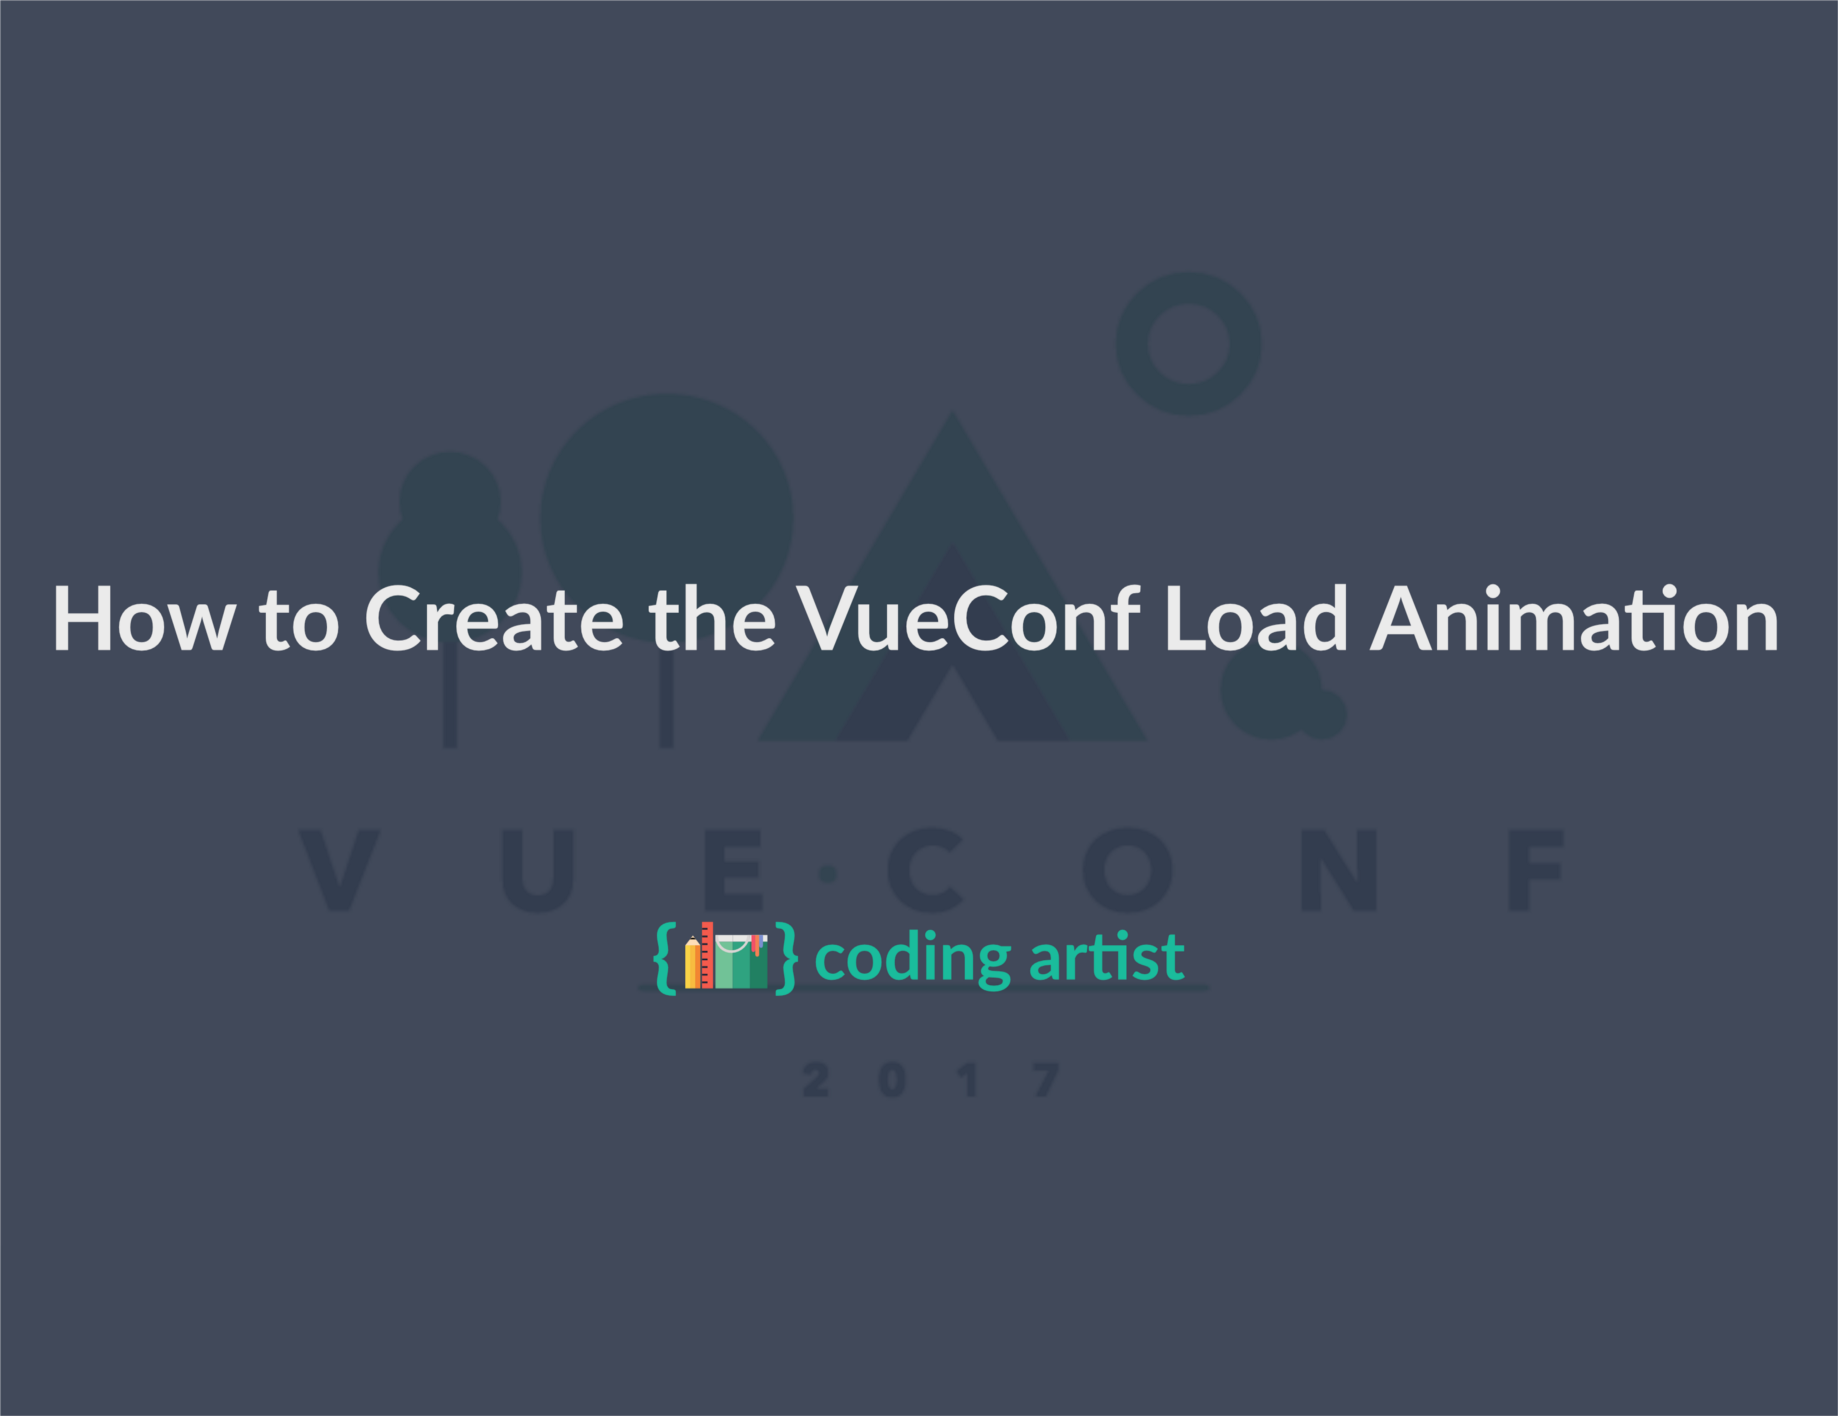 How to Create the VueConf Load Animation (While Learning About Vue